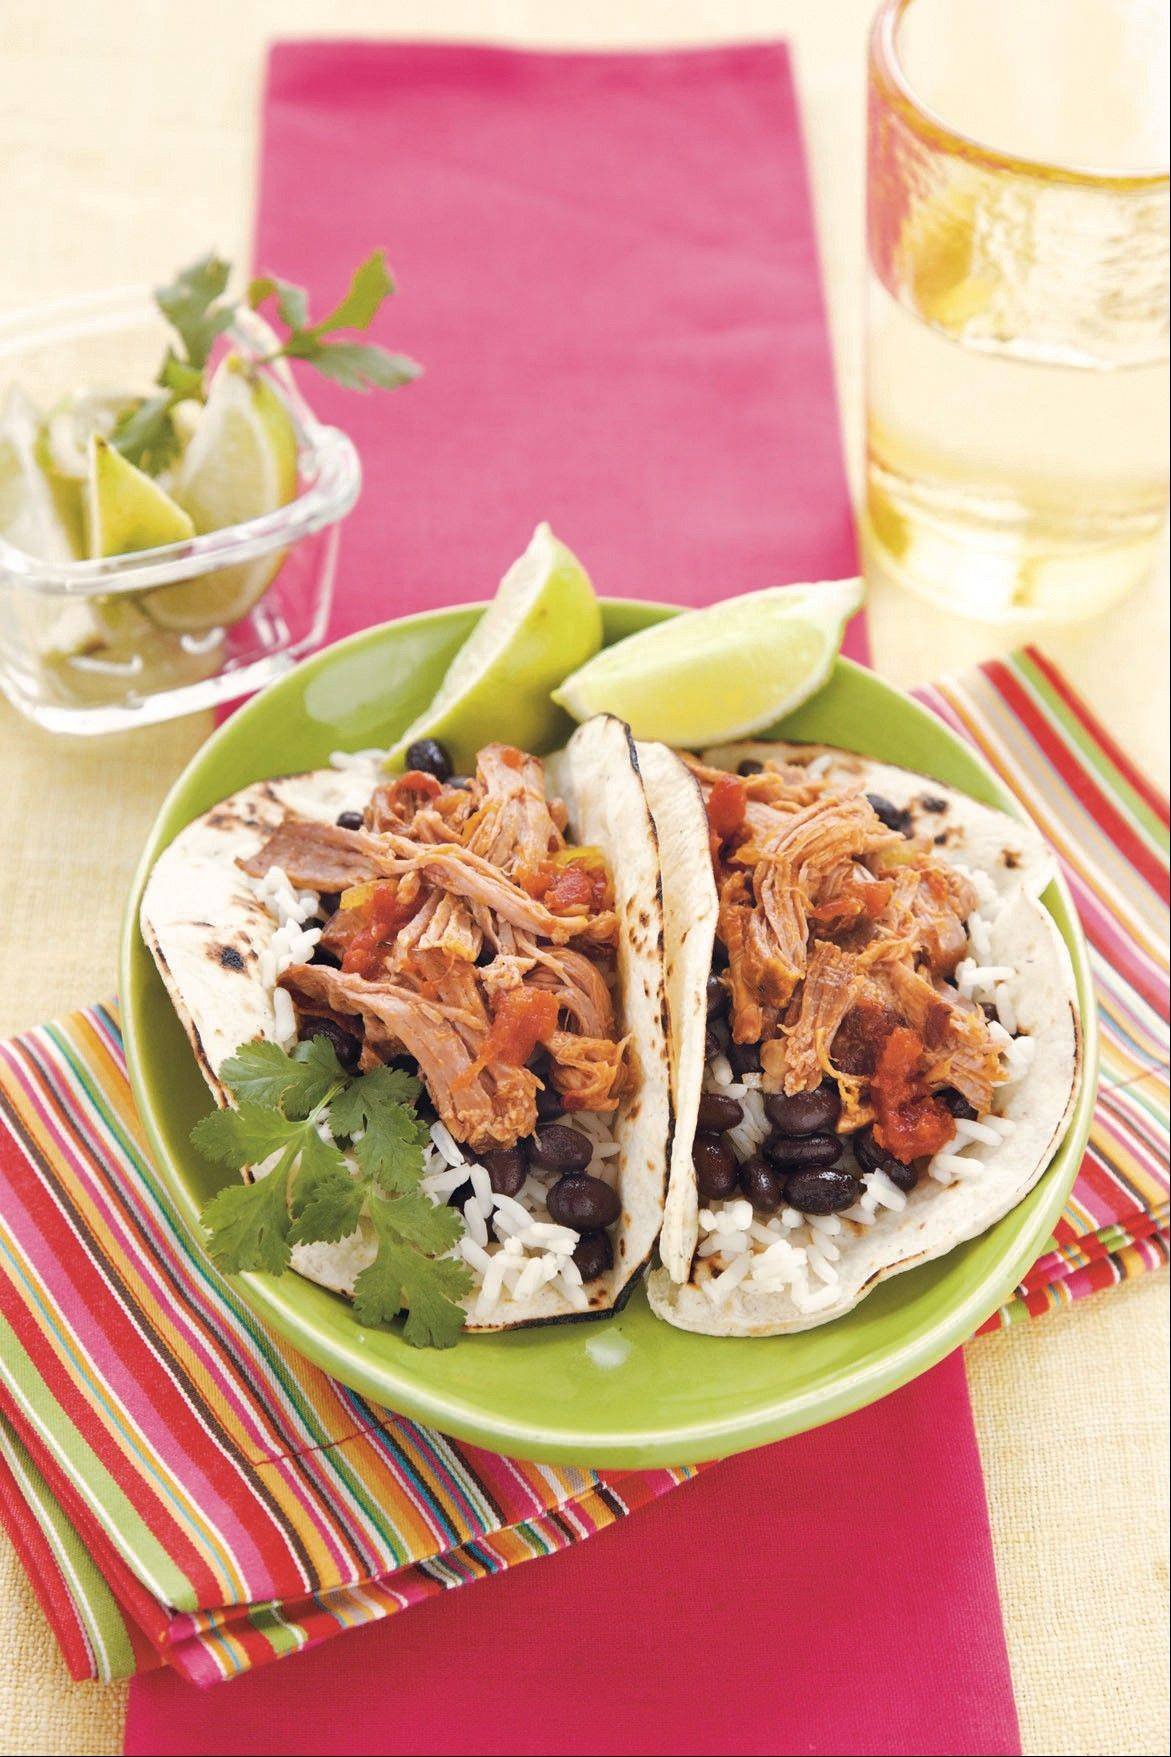 Sweet 'n' Spicy Braised Pork Tacos